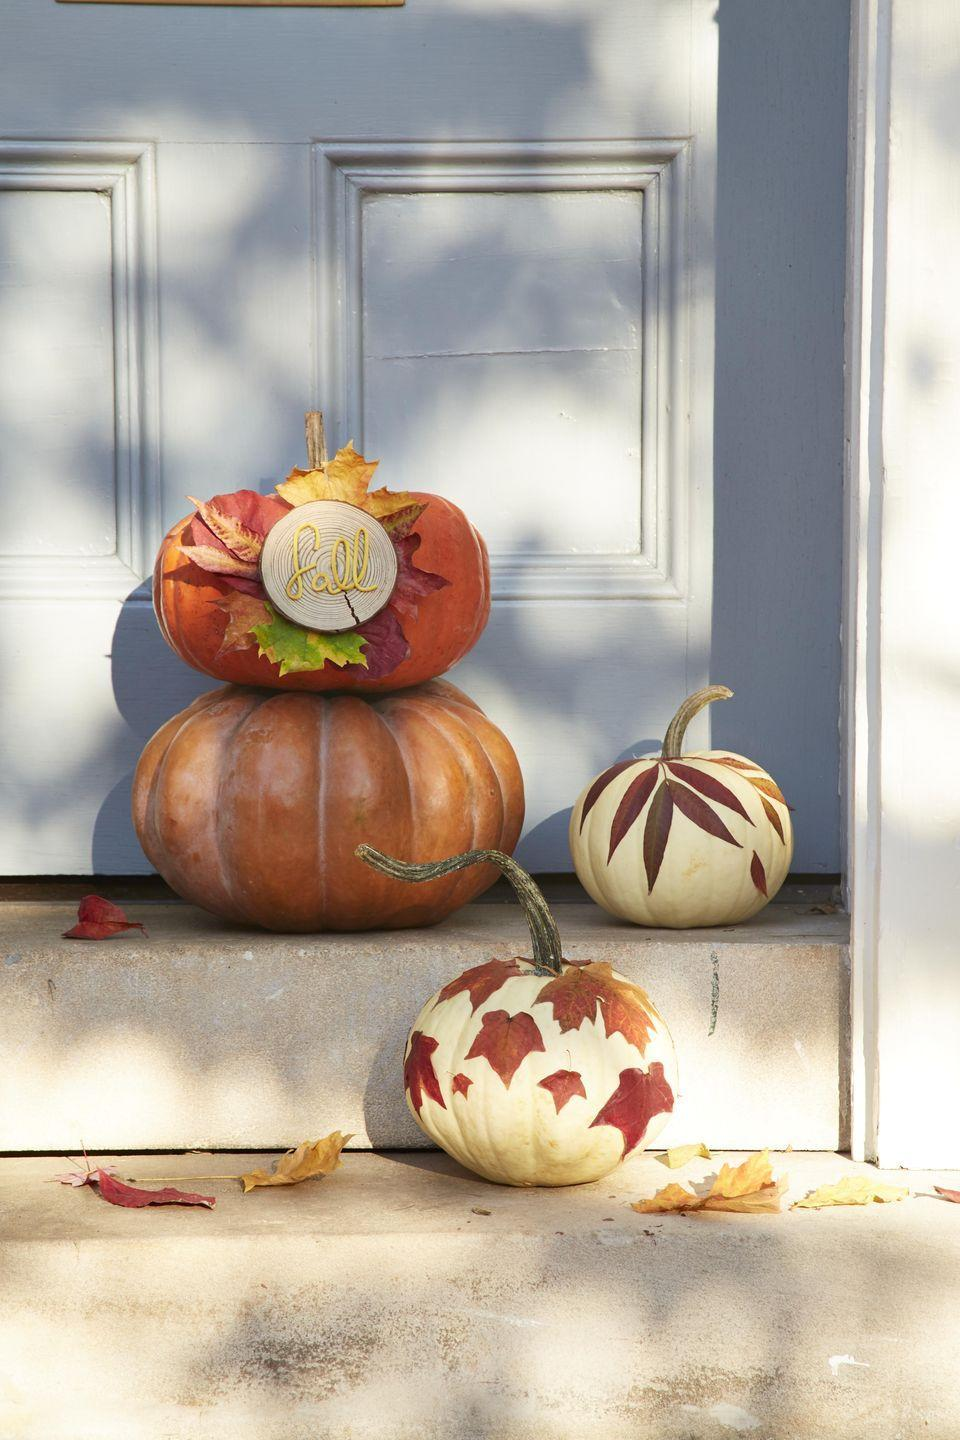 """<p>Nestled in the crook of a covered front porch, these simple and elegant gourds are decorated with leaves and a few easy-to-find craft supplies.</p><p><strong>To make:</strong><strong><br></strong></p><p><strong>Fall Lettering:</strong> Attach leaves, in a wreath shape, to a pumpkin with flat head push pins. Use a pencil to lightly draw the word """"fall"""" on a small wood round. Attach thin leather cording or twine over the drawing with hot glue. Hot glue wood round to the pumpkin over the center of the leaves.</p><p><strong>Leaf Covered: </strong>For one season pumpkins attach leaves from the yard with spray adhesive in a loose pattern. If you want to keep the pumpkin from year to year attach preserved leaves to a fake pumpkin. </p>"""